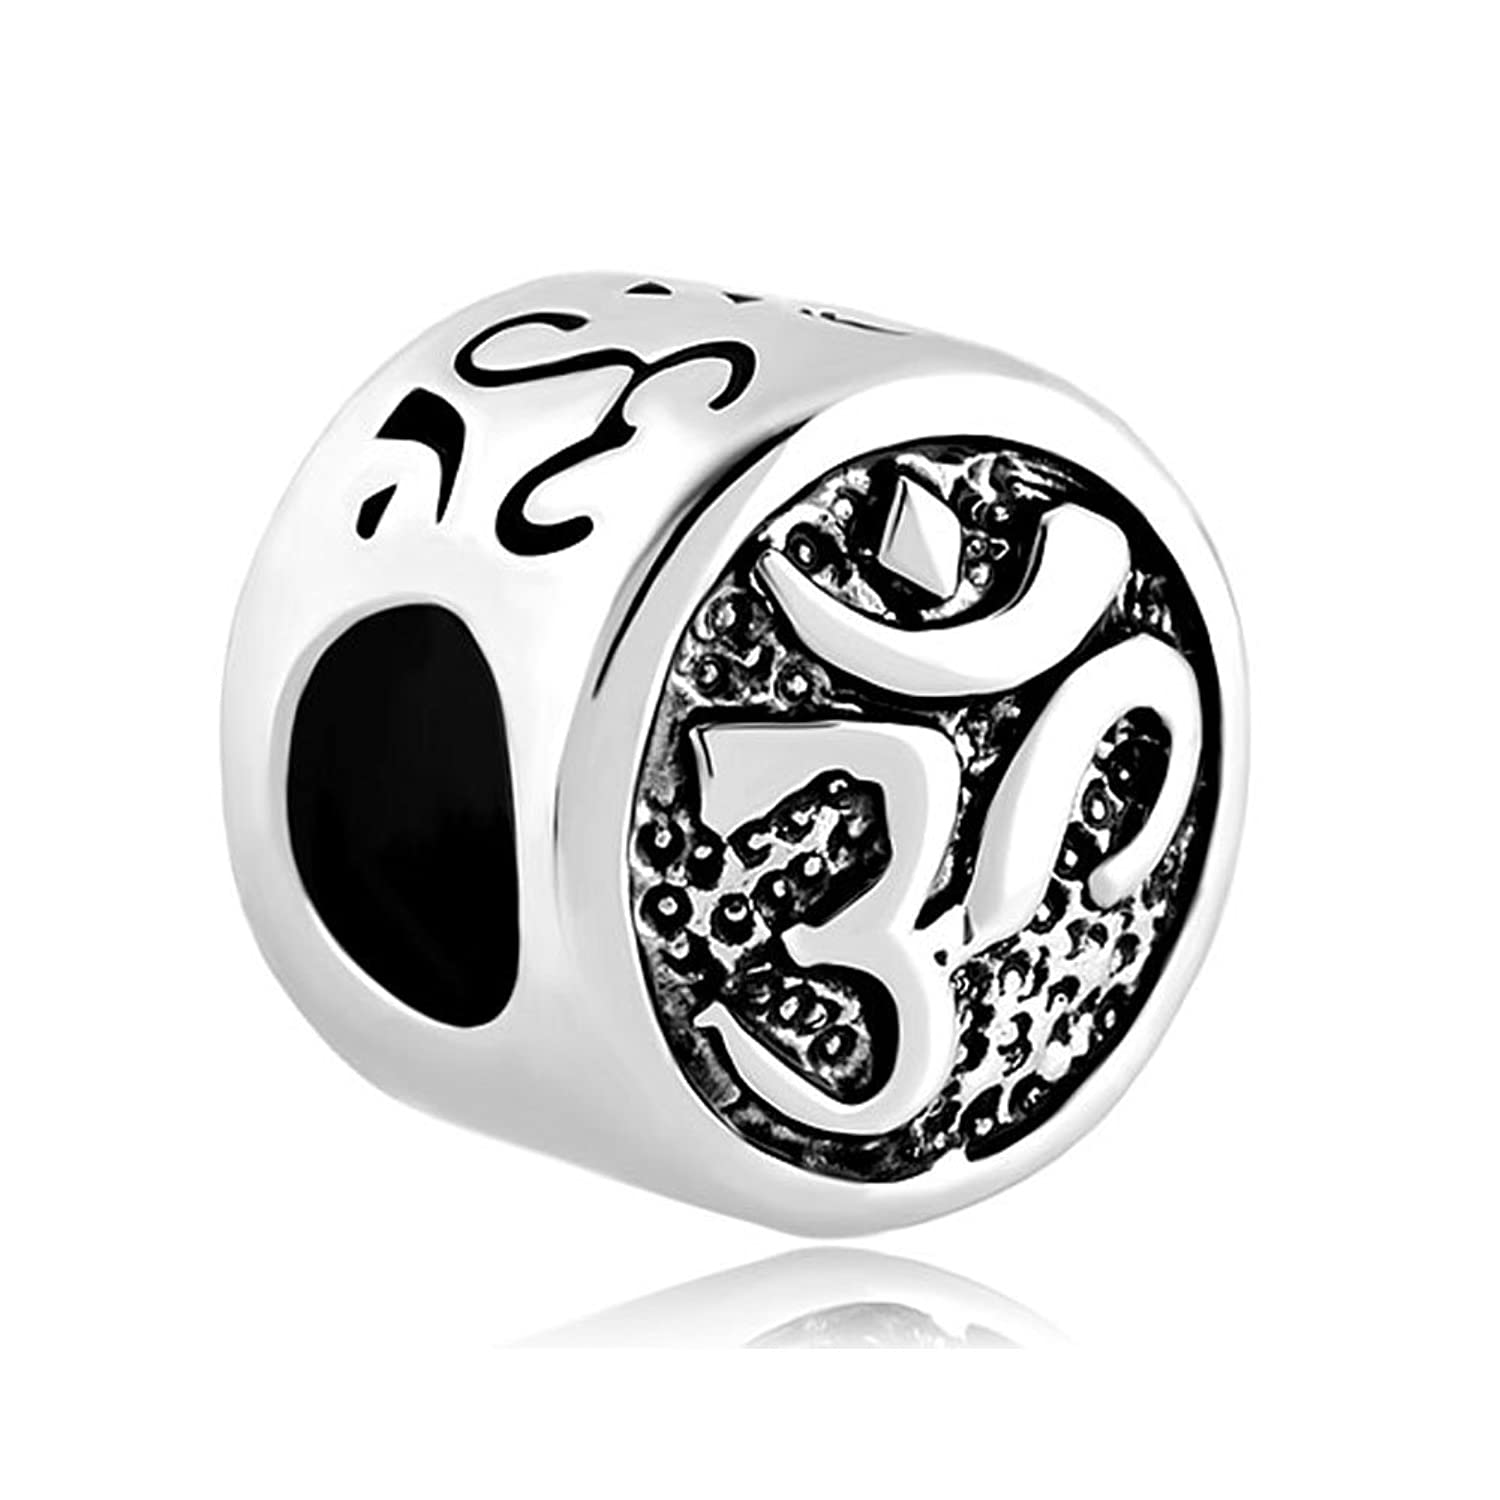 Uniqueen jewelry womens om symbol aum love yoga bead fits charms uniqueen jewelry womens om symbol aum love yoga bead fits charms bracelet amazon jewellery buycottarizona Image collections